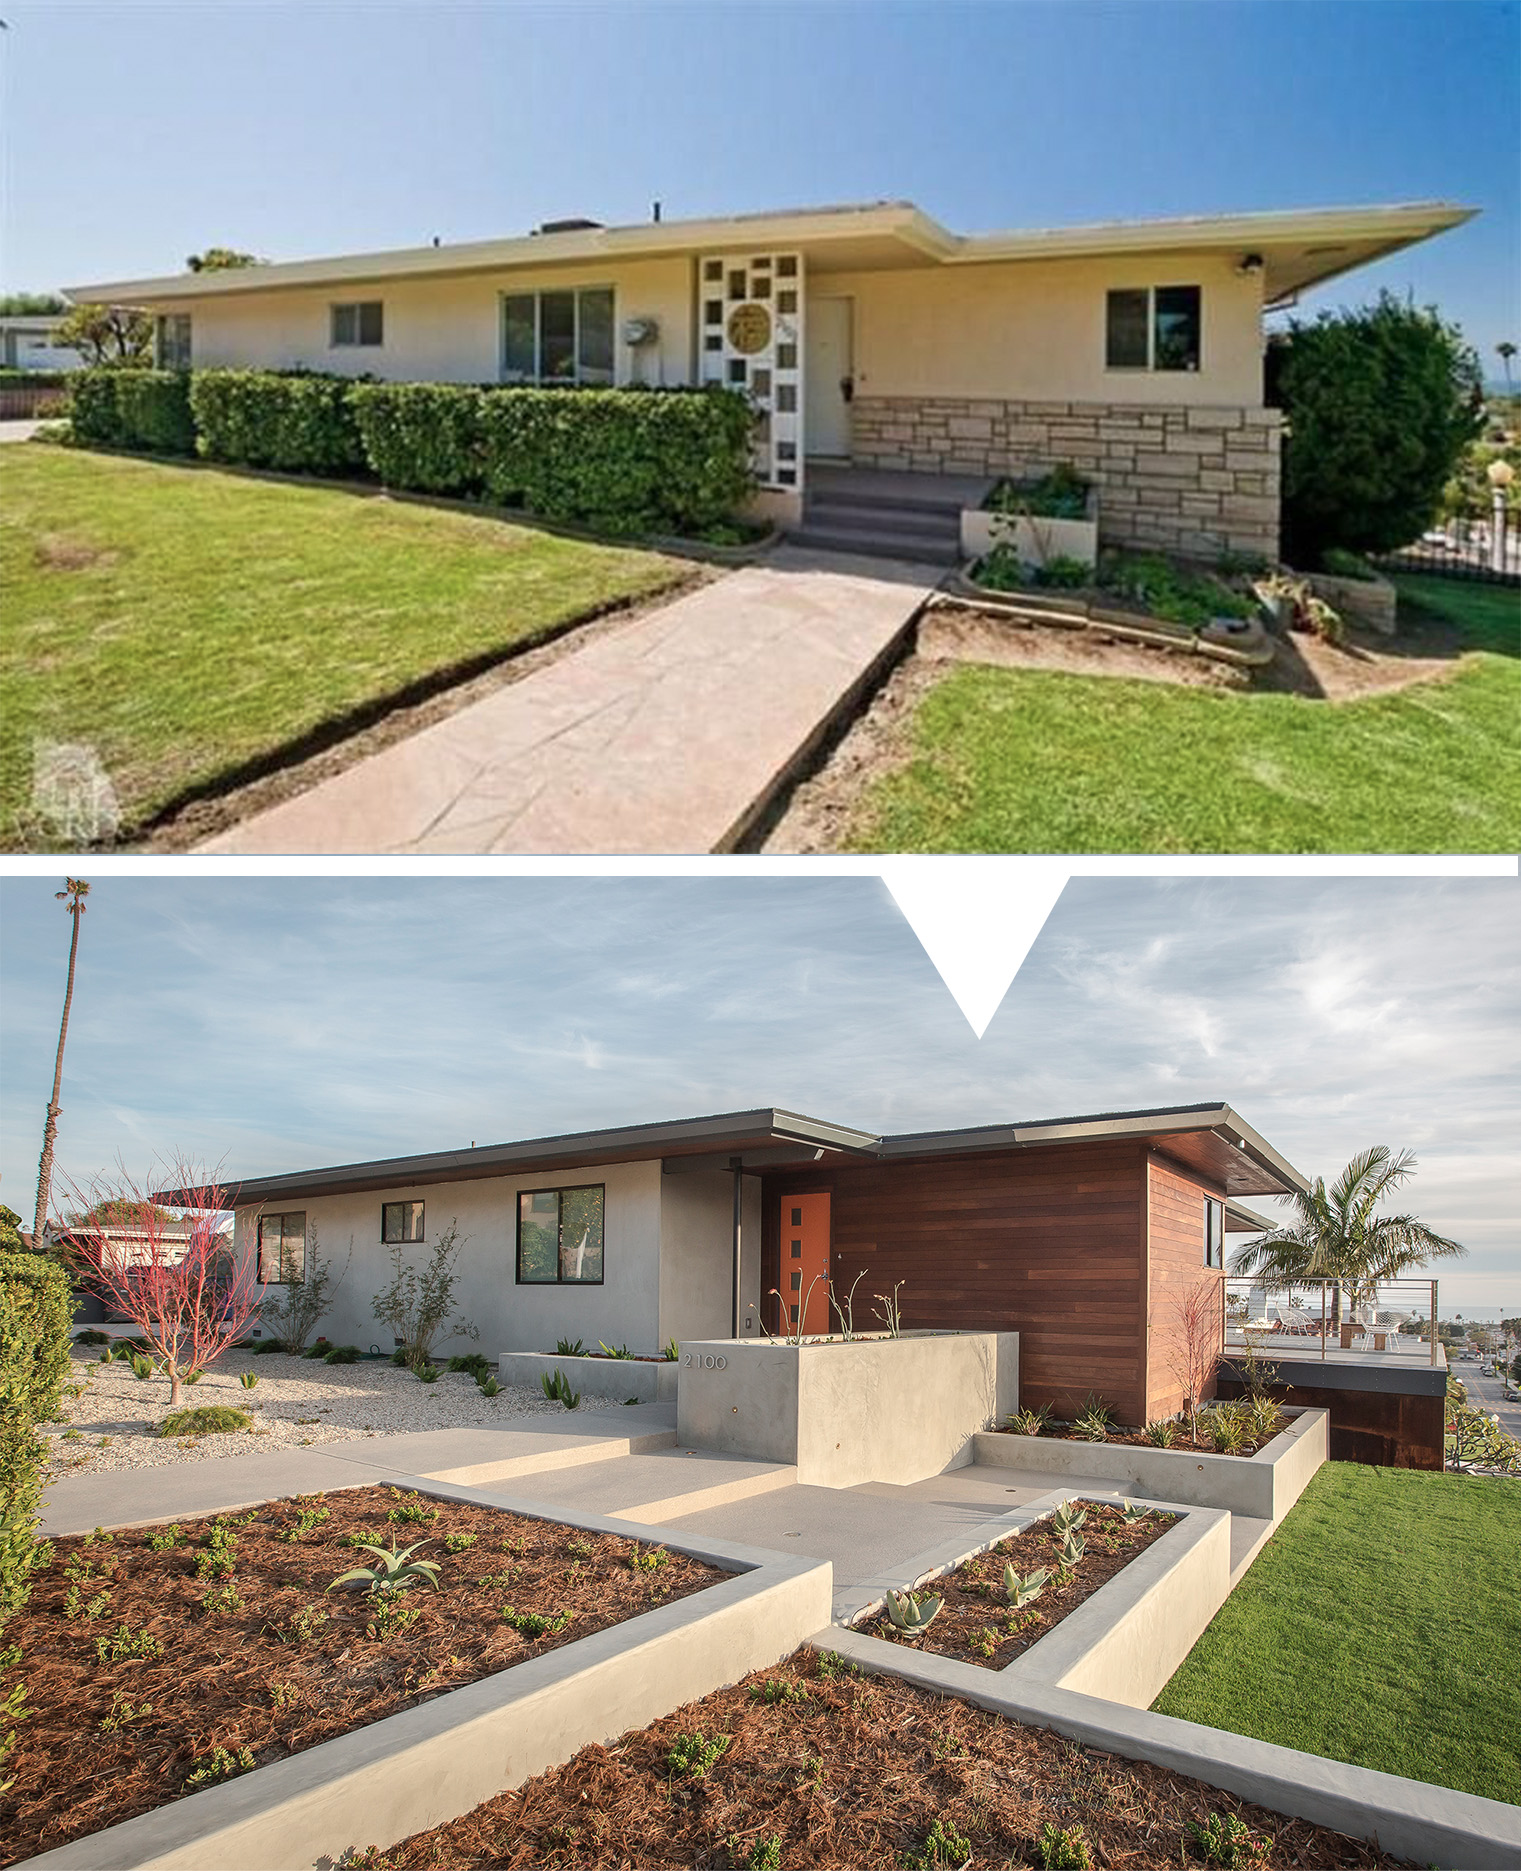 Mid Century Modern Architecture A Look At Mid Century: Making A Mid-century Modern Again Part 2